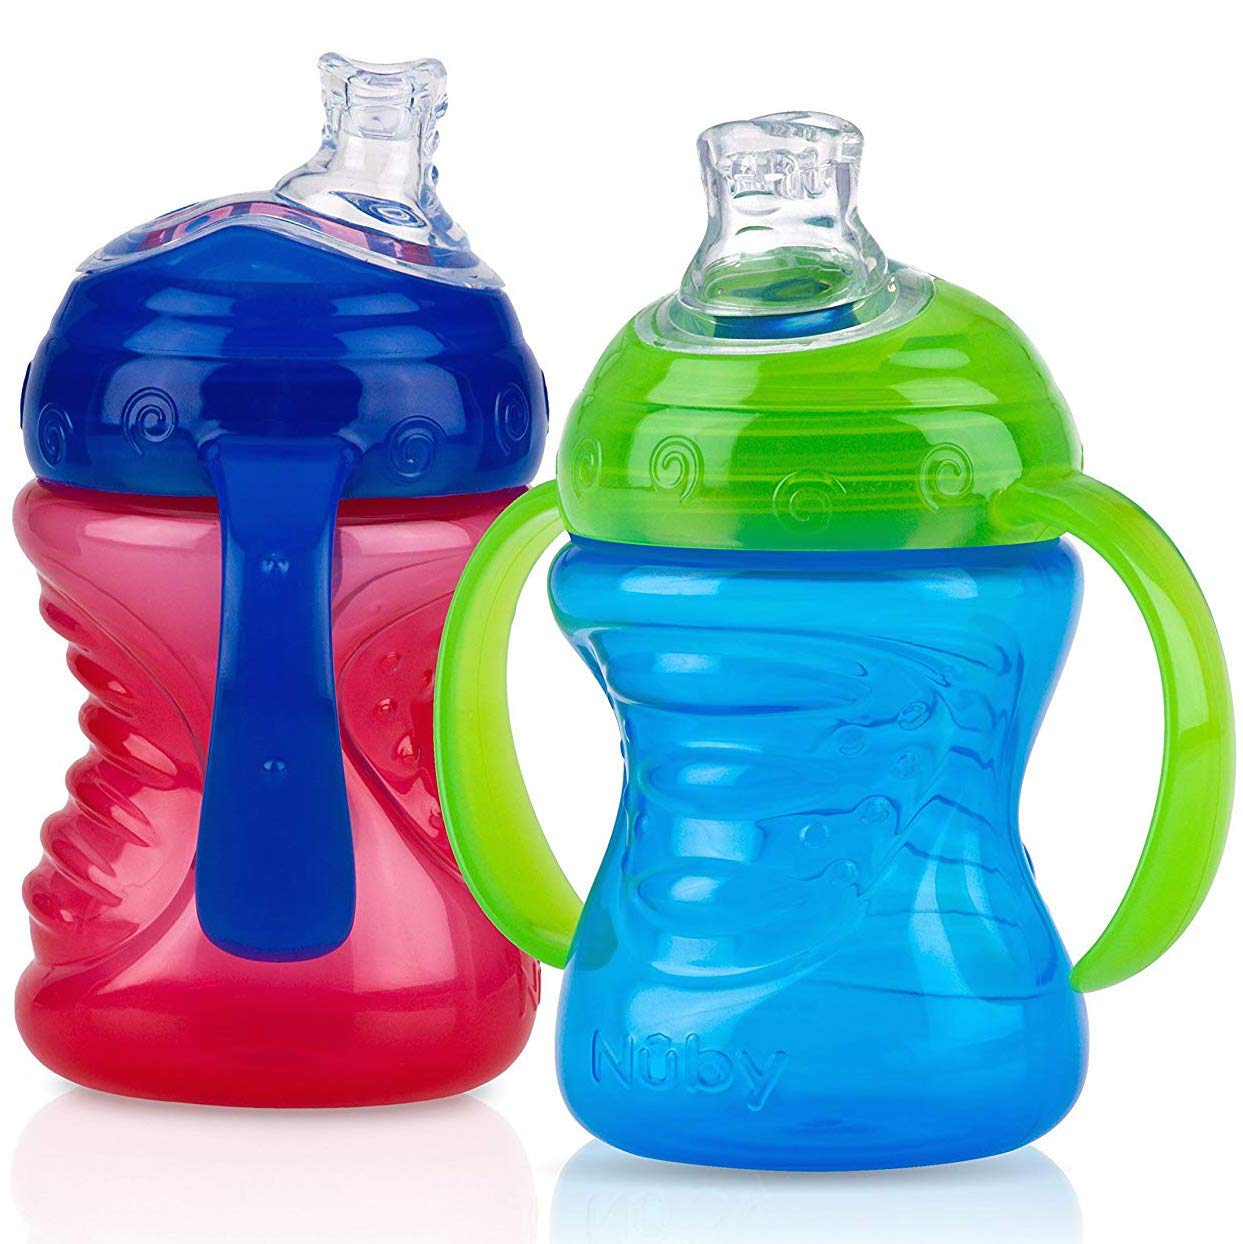 Nuby 2-Pack No-Spill Now on sale Super Spout Grip Sip Red Al sold out. Cup and Blue N'